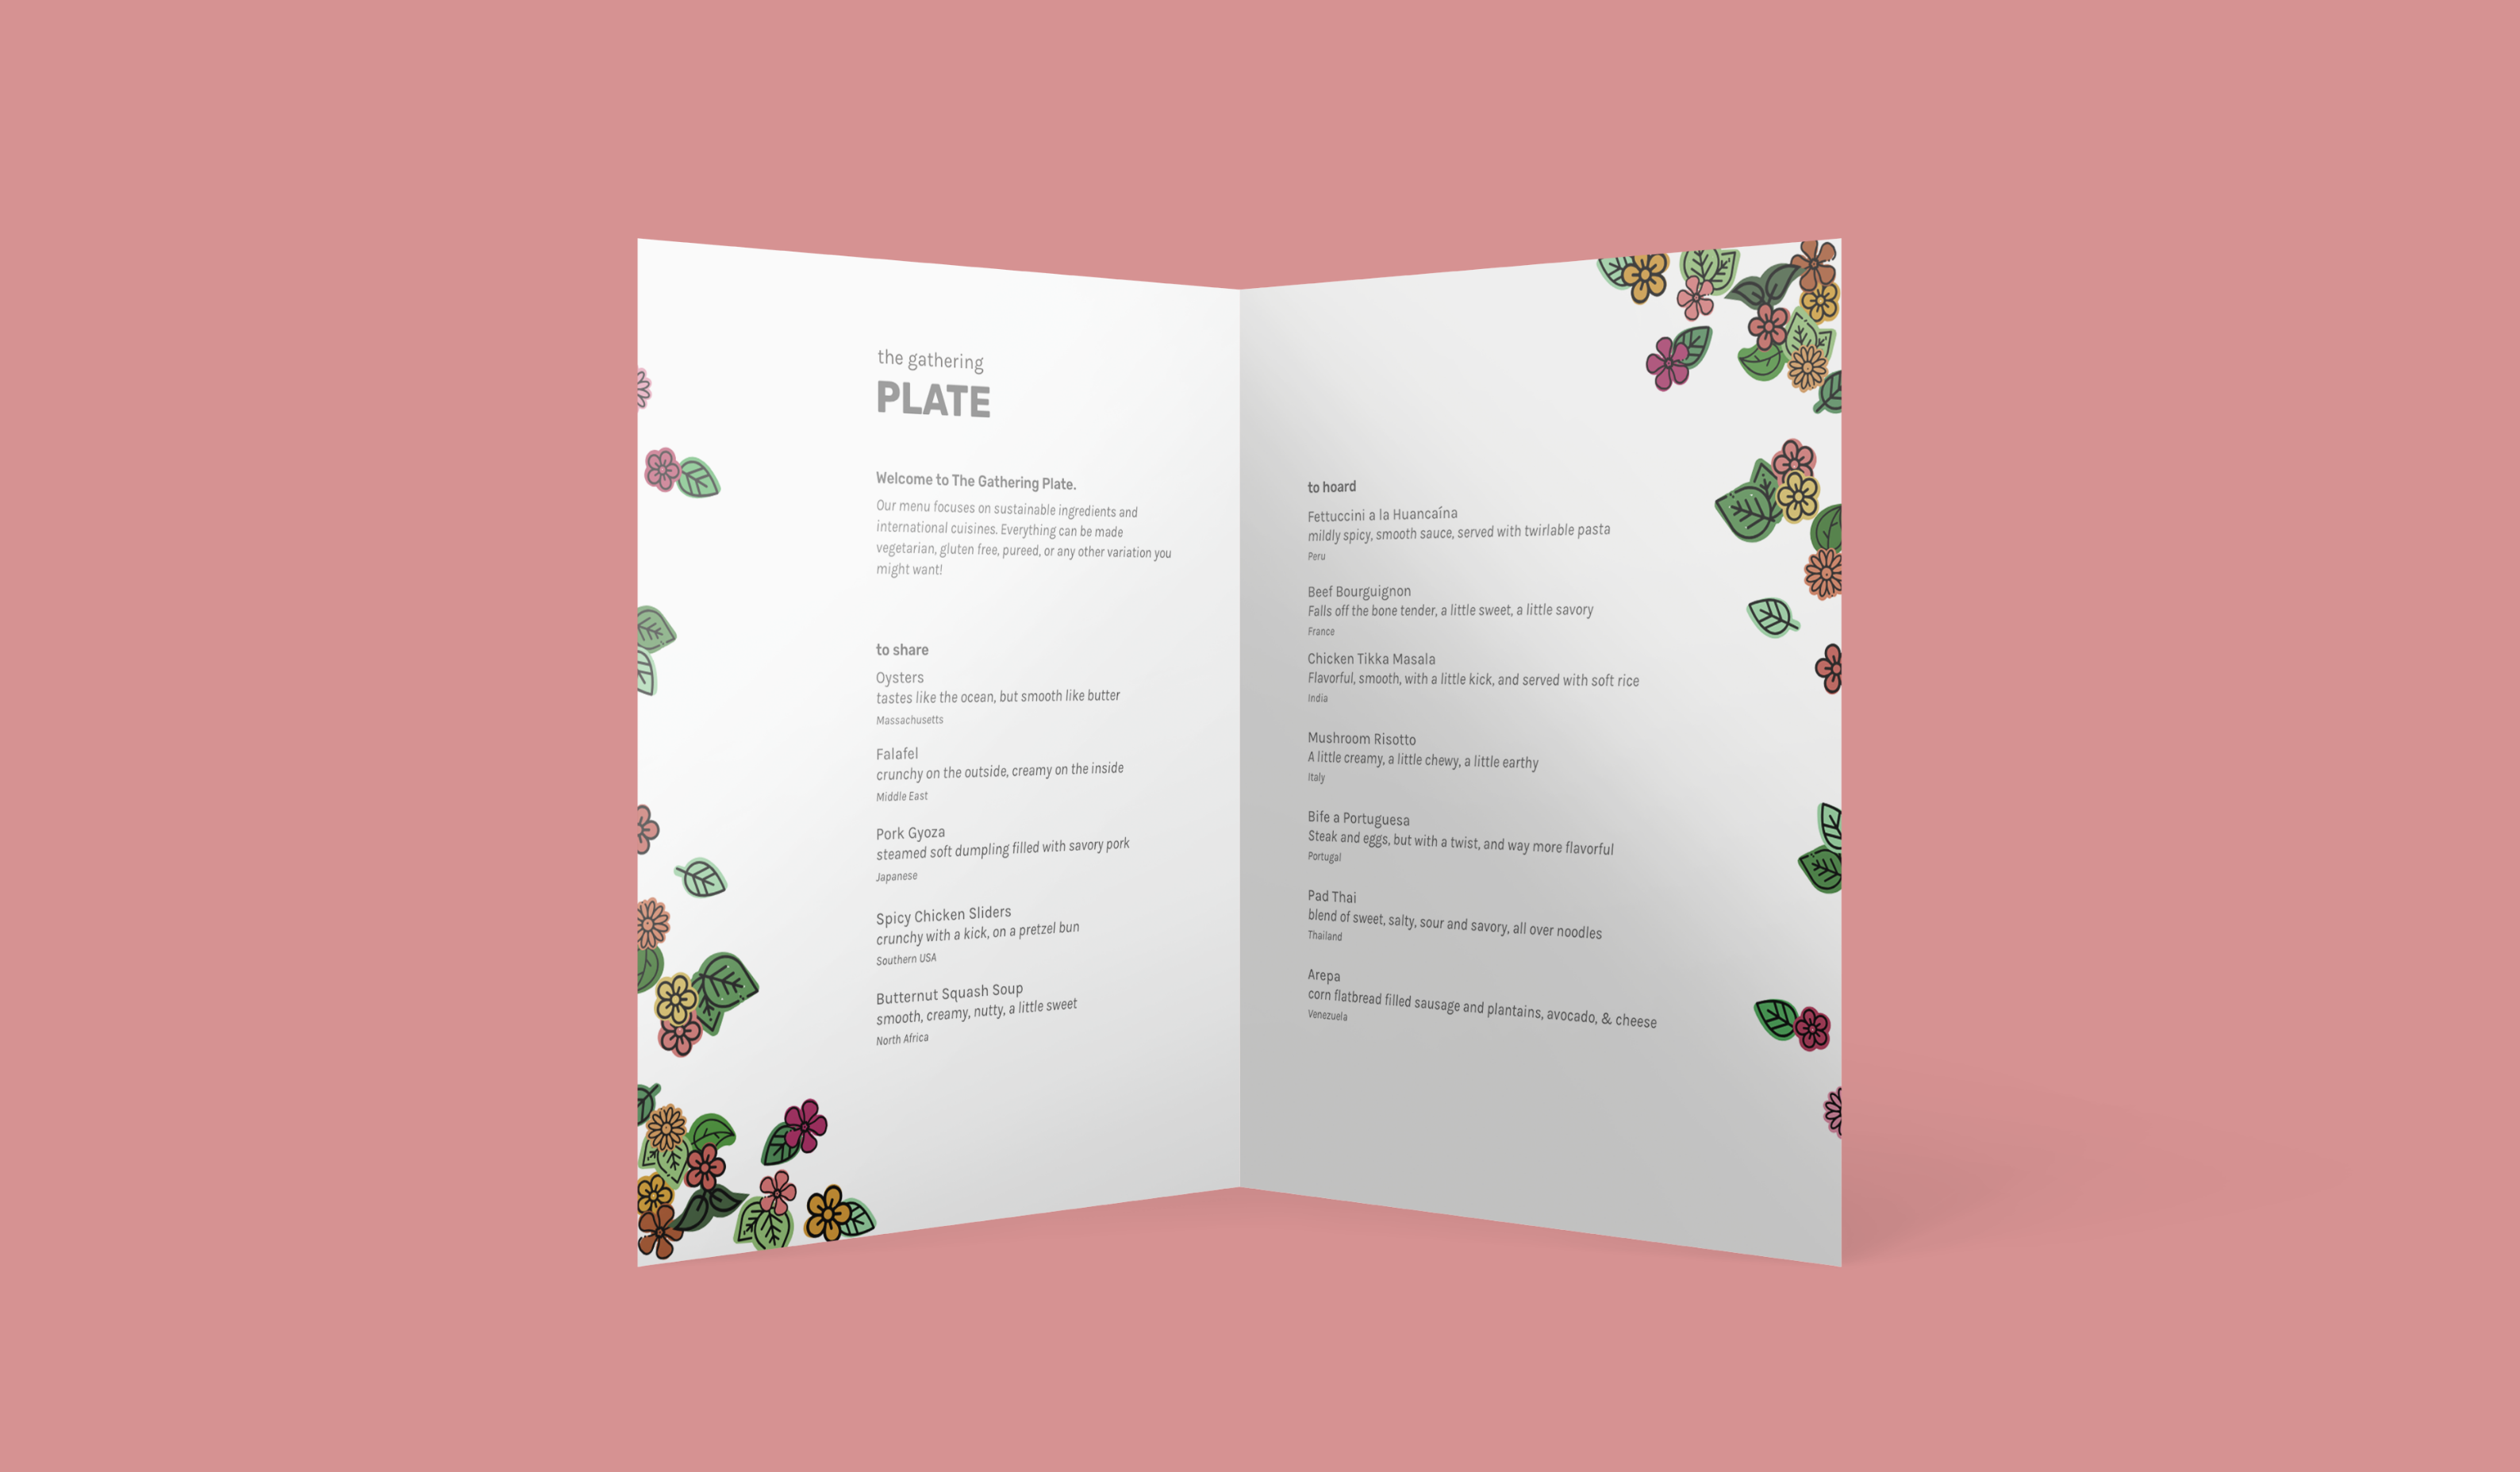 A bi-fold menu decorated with floral imagery